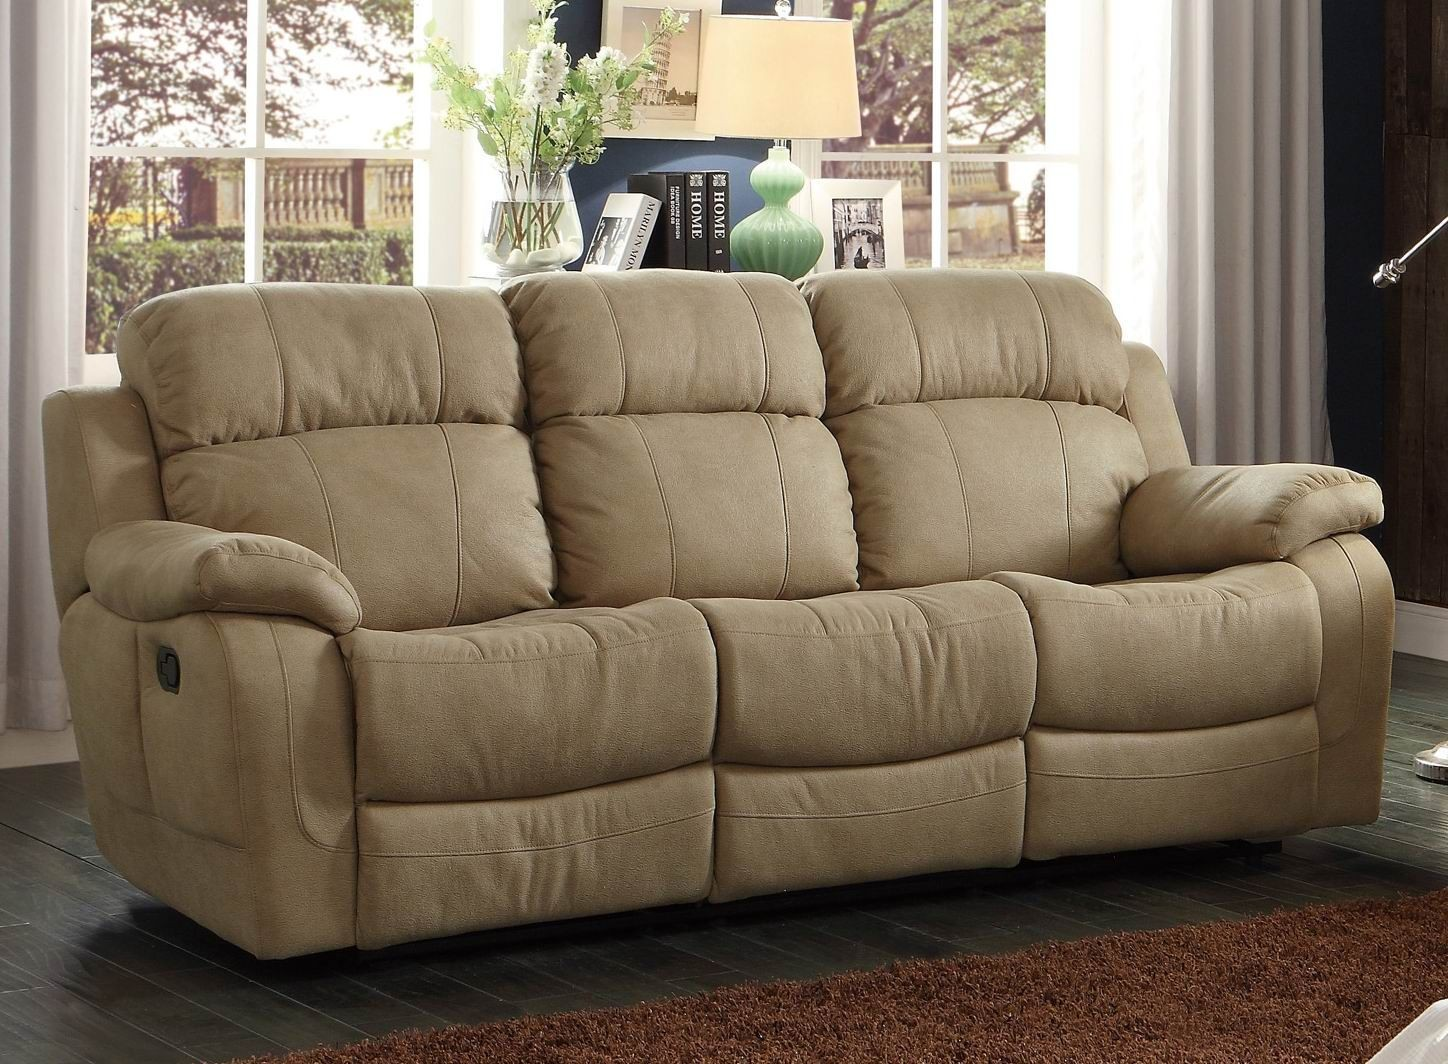 marille camel double reclining sofa with center drop down cup holder